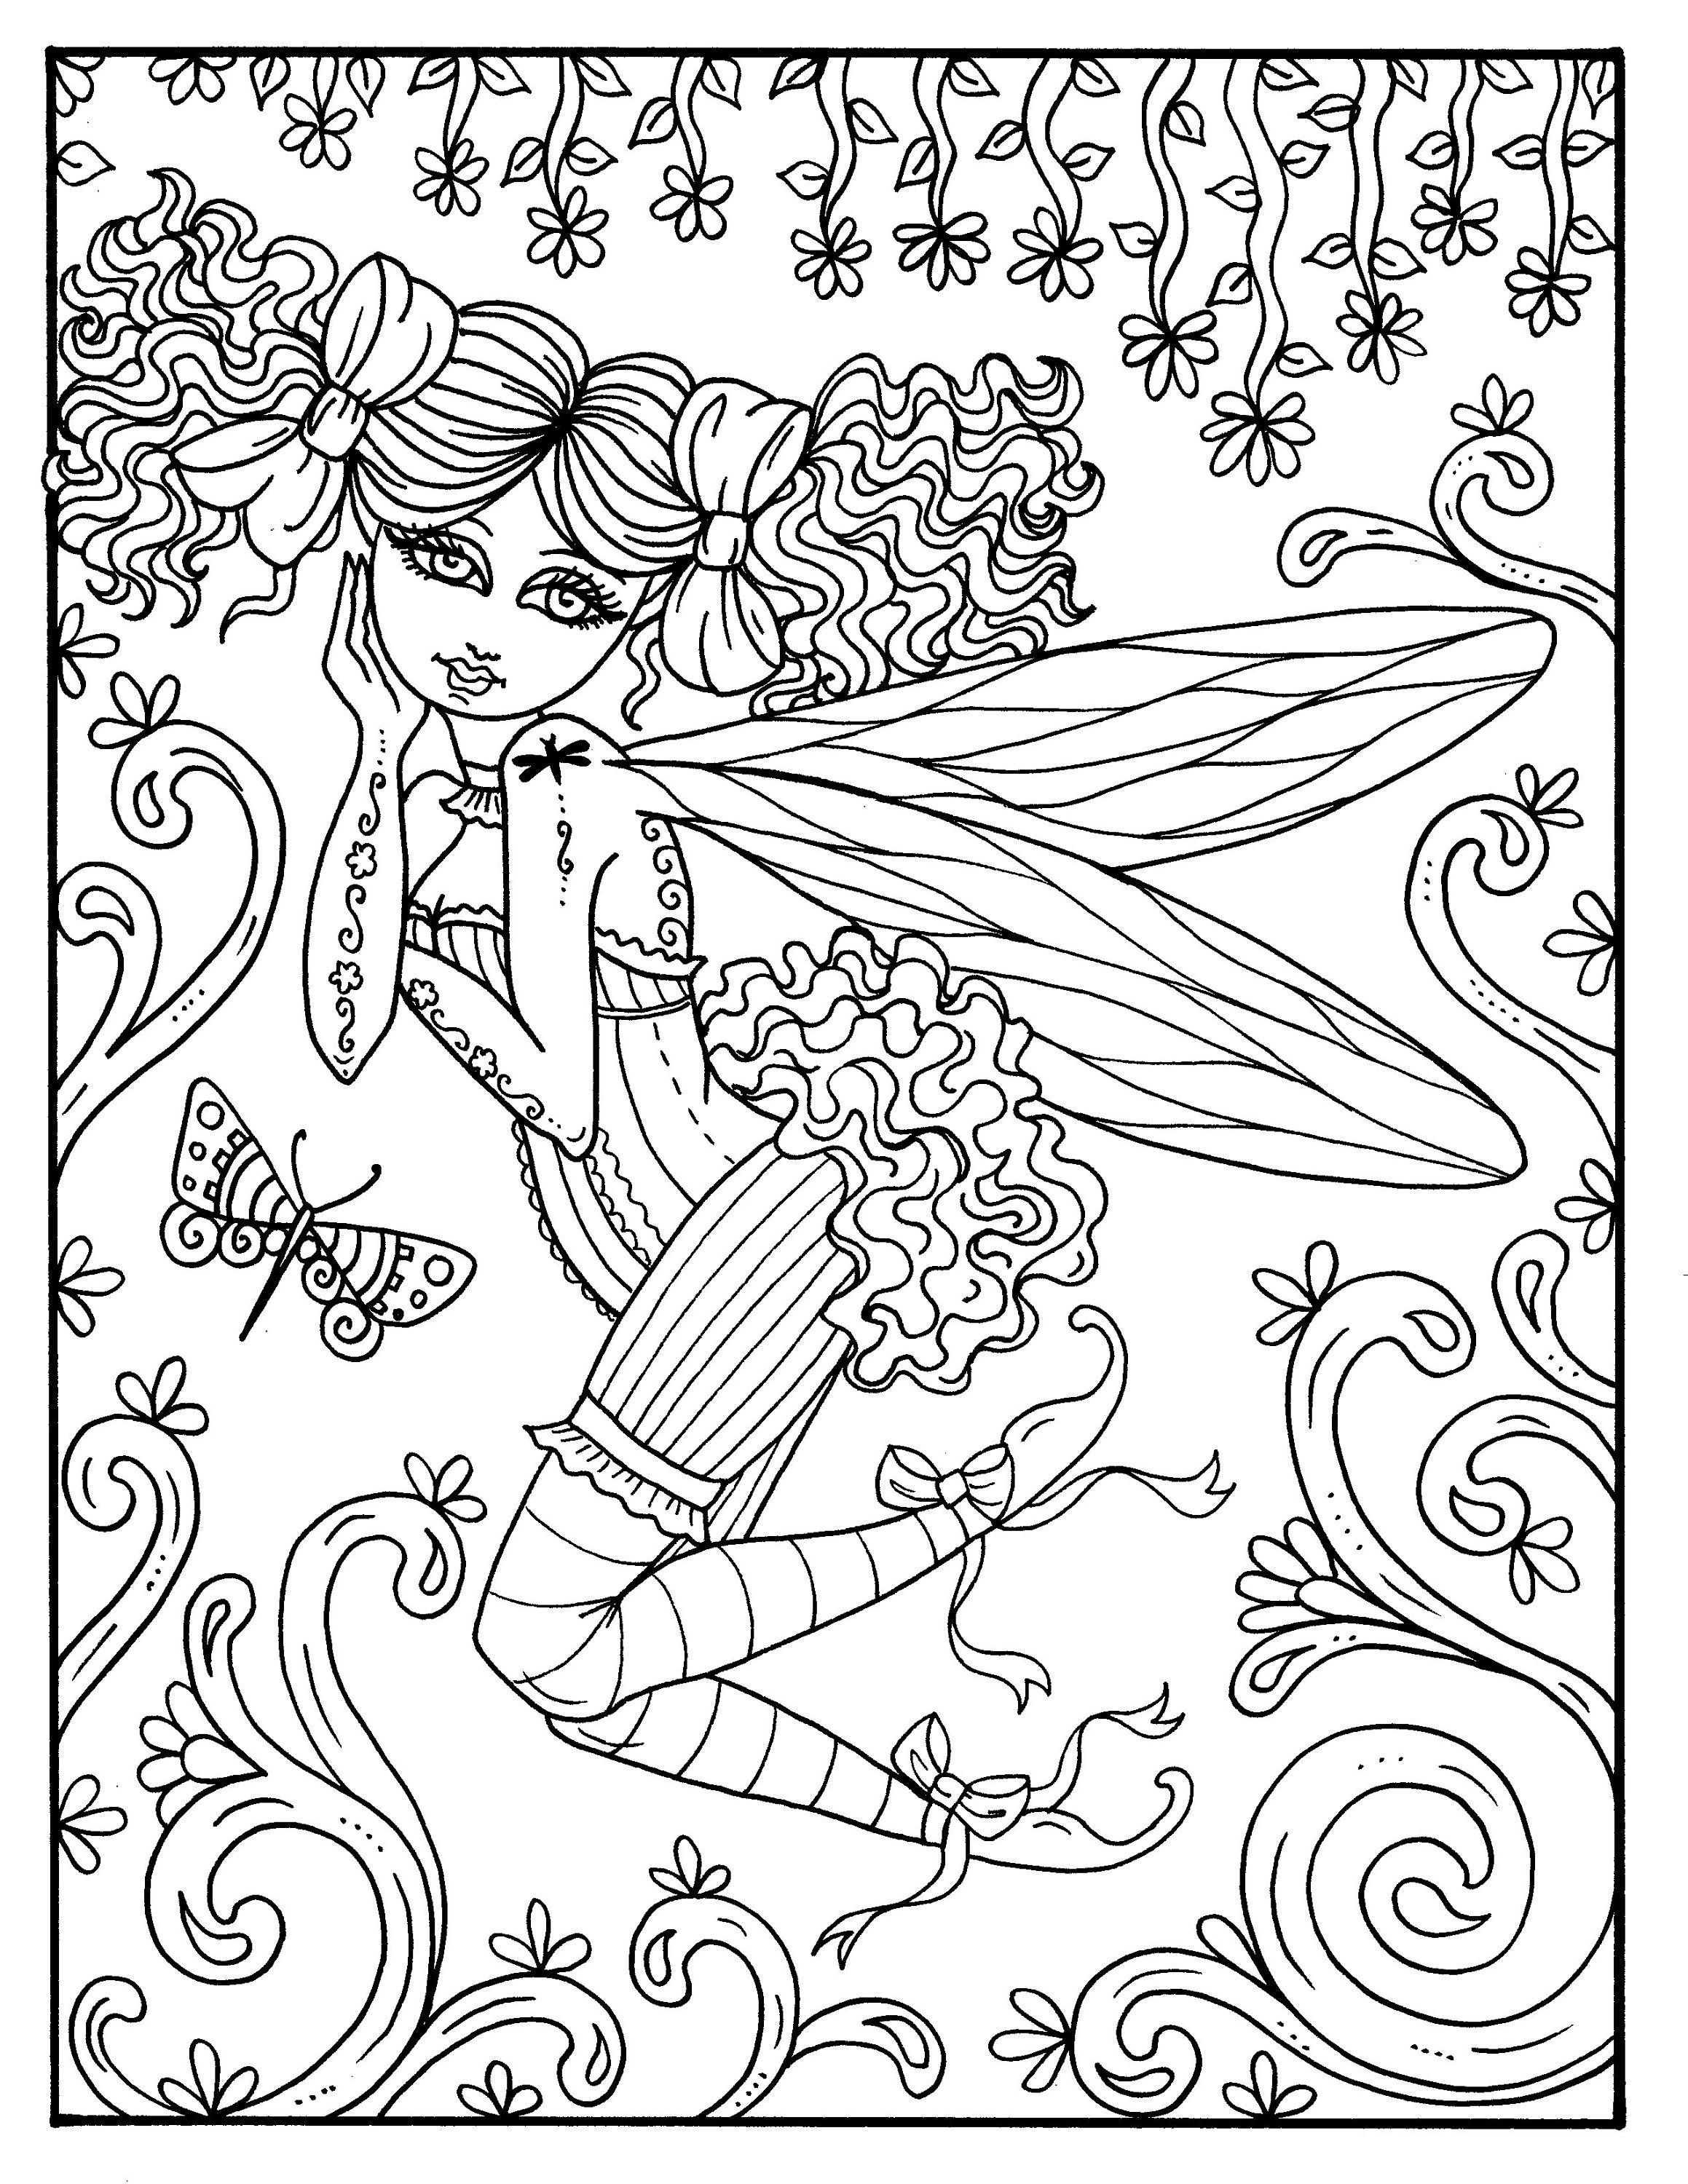 steampunk gothic fairy coloring pages pin by beth conroy on coloring 15 fairy coloring pages fairy steampunk coloring pages gothic